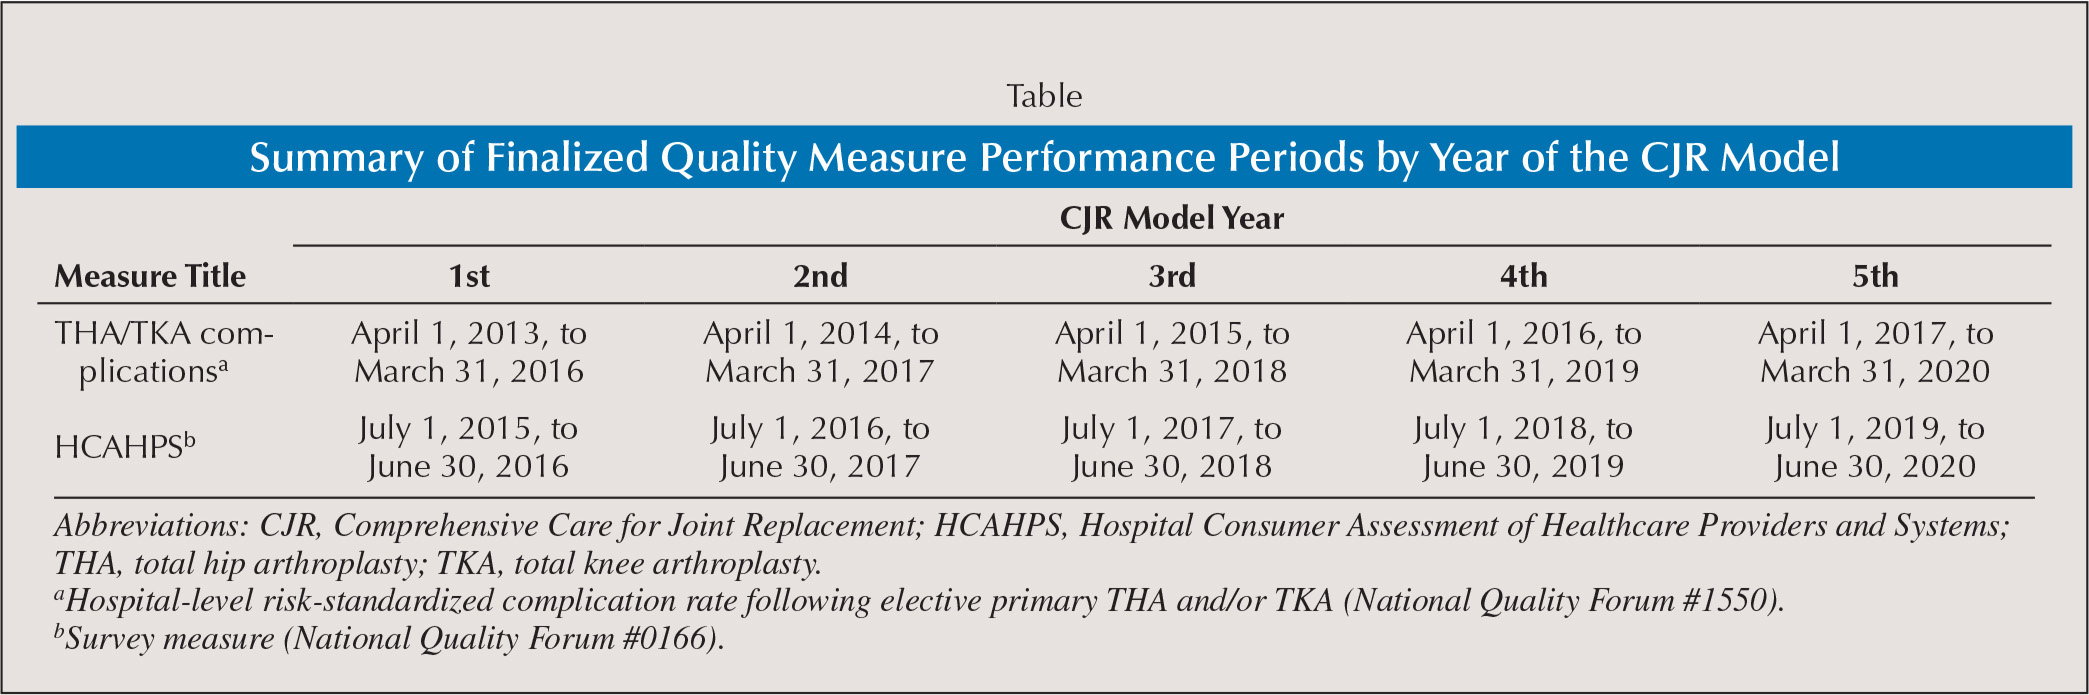 Medical abbreviations tha - Summary Of Finalized Quality Measure Performance Periods By Year Of The Cjr Model